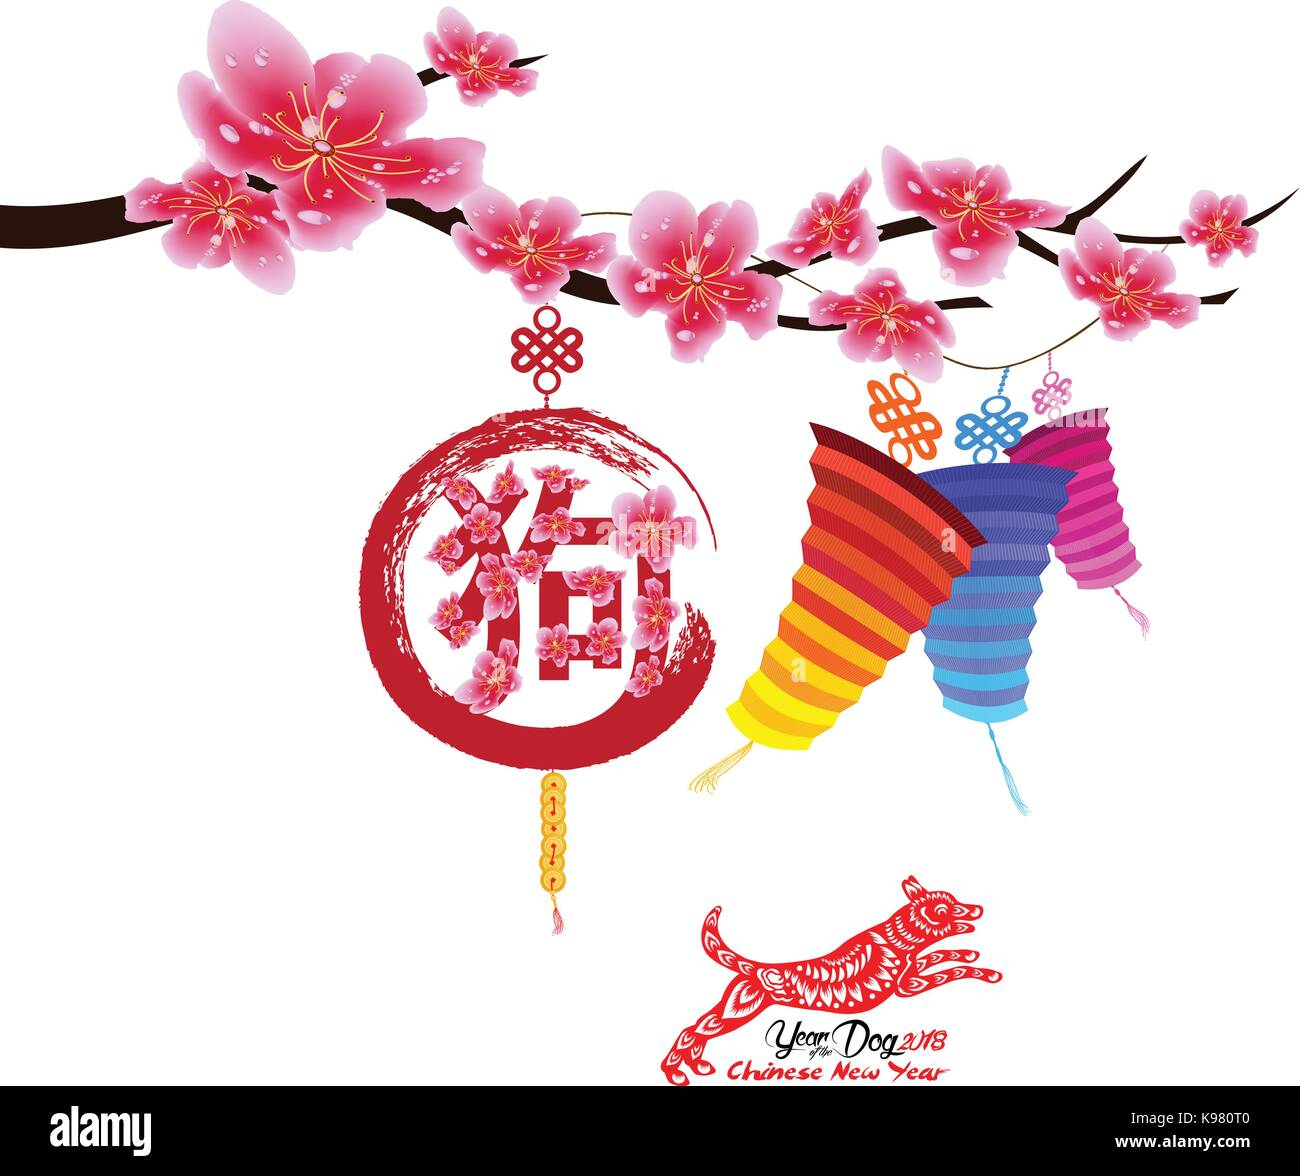 classic chinese new year blossom and lantern background year of the dog chinese character hieroglyph dog